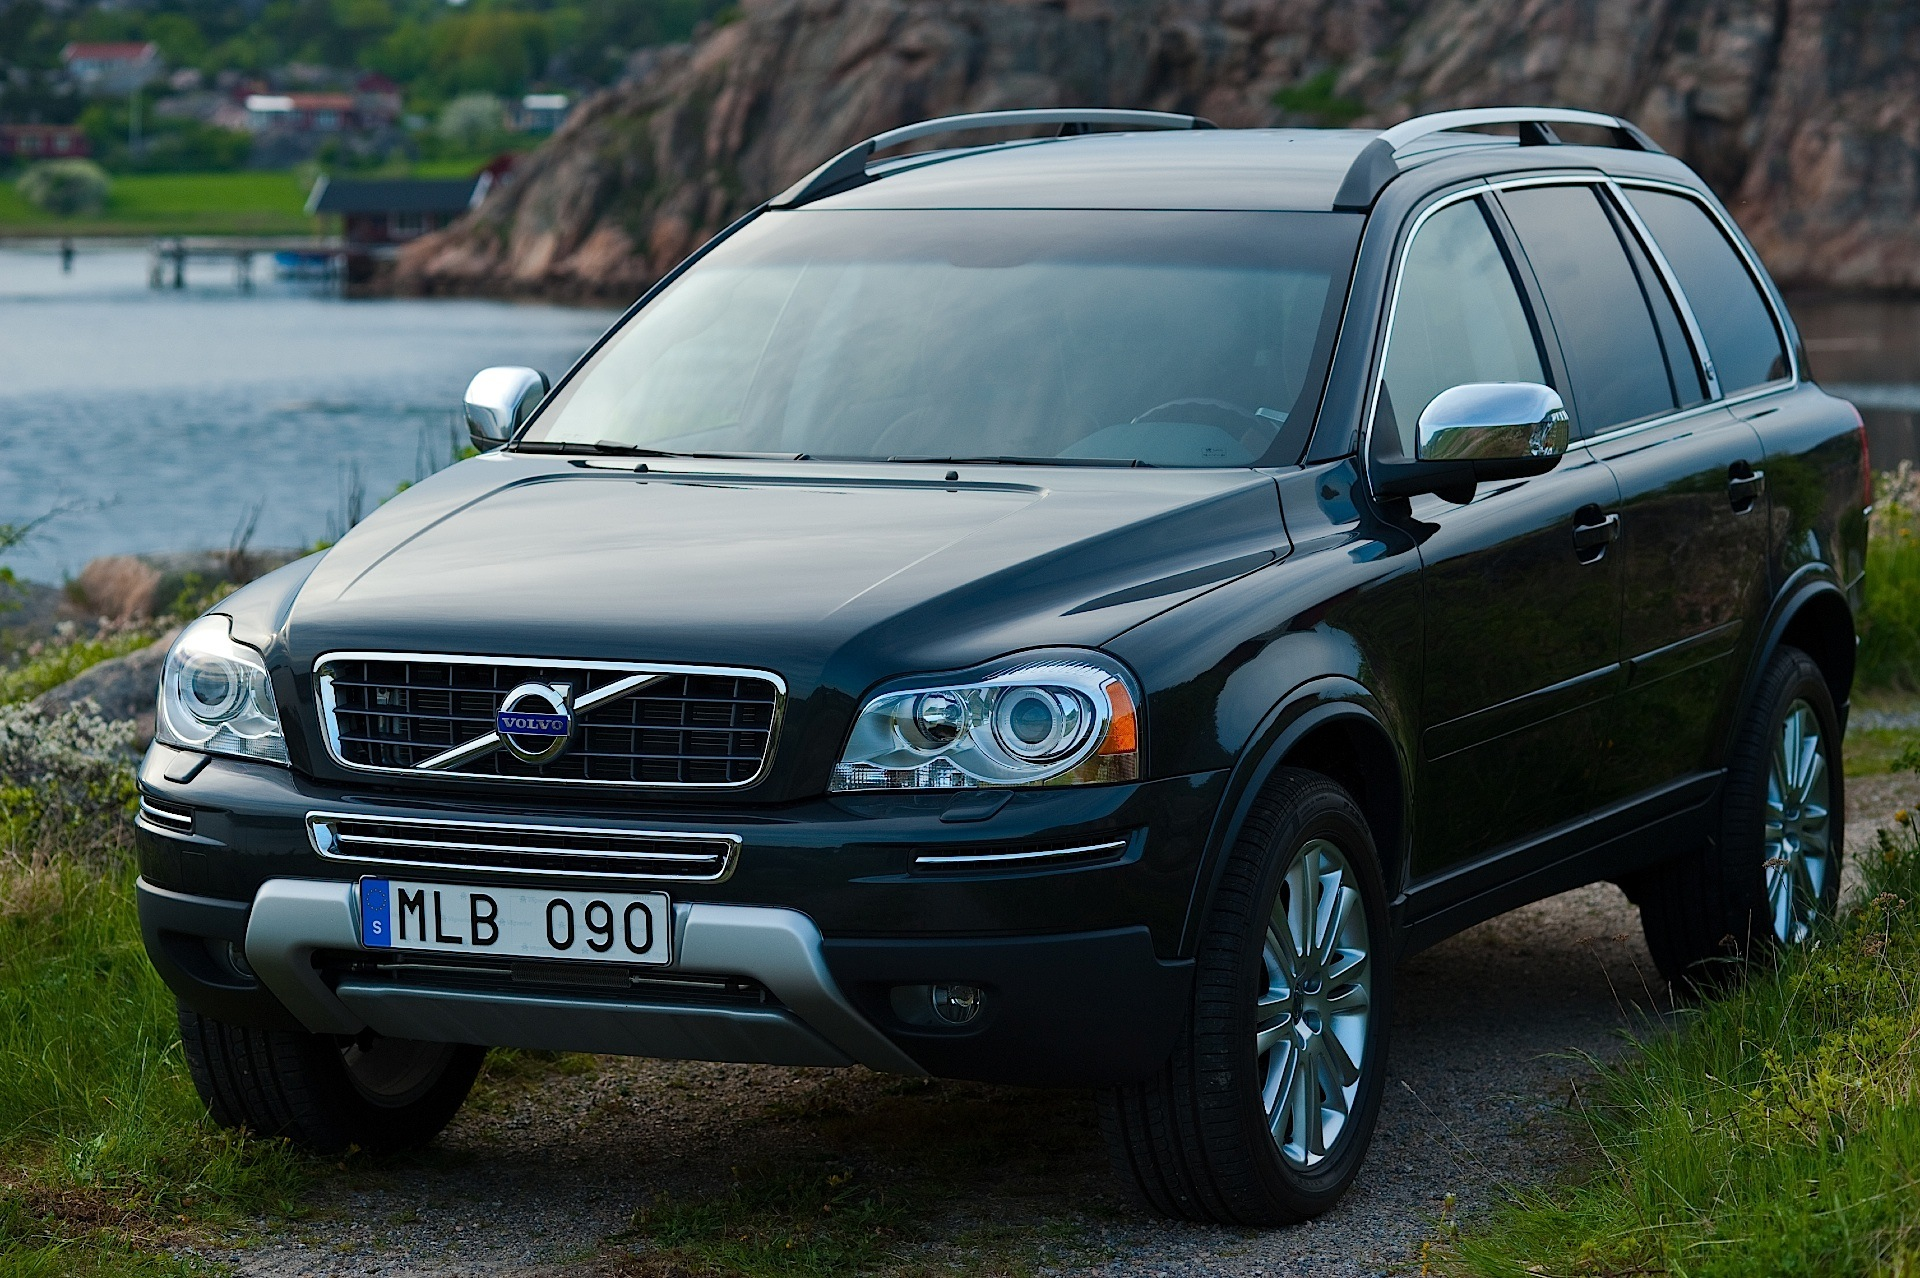 volvo xc90 specs 2007 2008 2009 2010 2011 2012 2013 2014 autoevolution. Black Bedroom Furniture Sets. Home Design Ideas